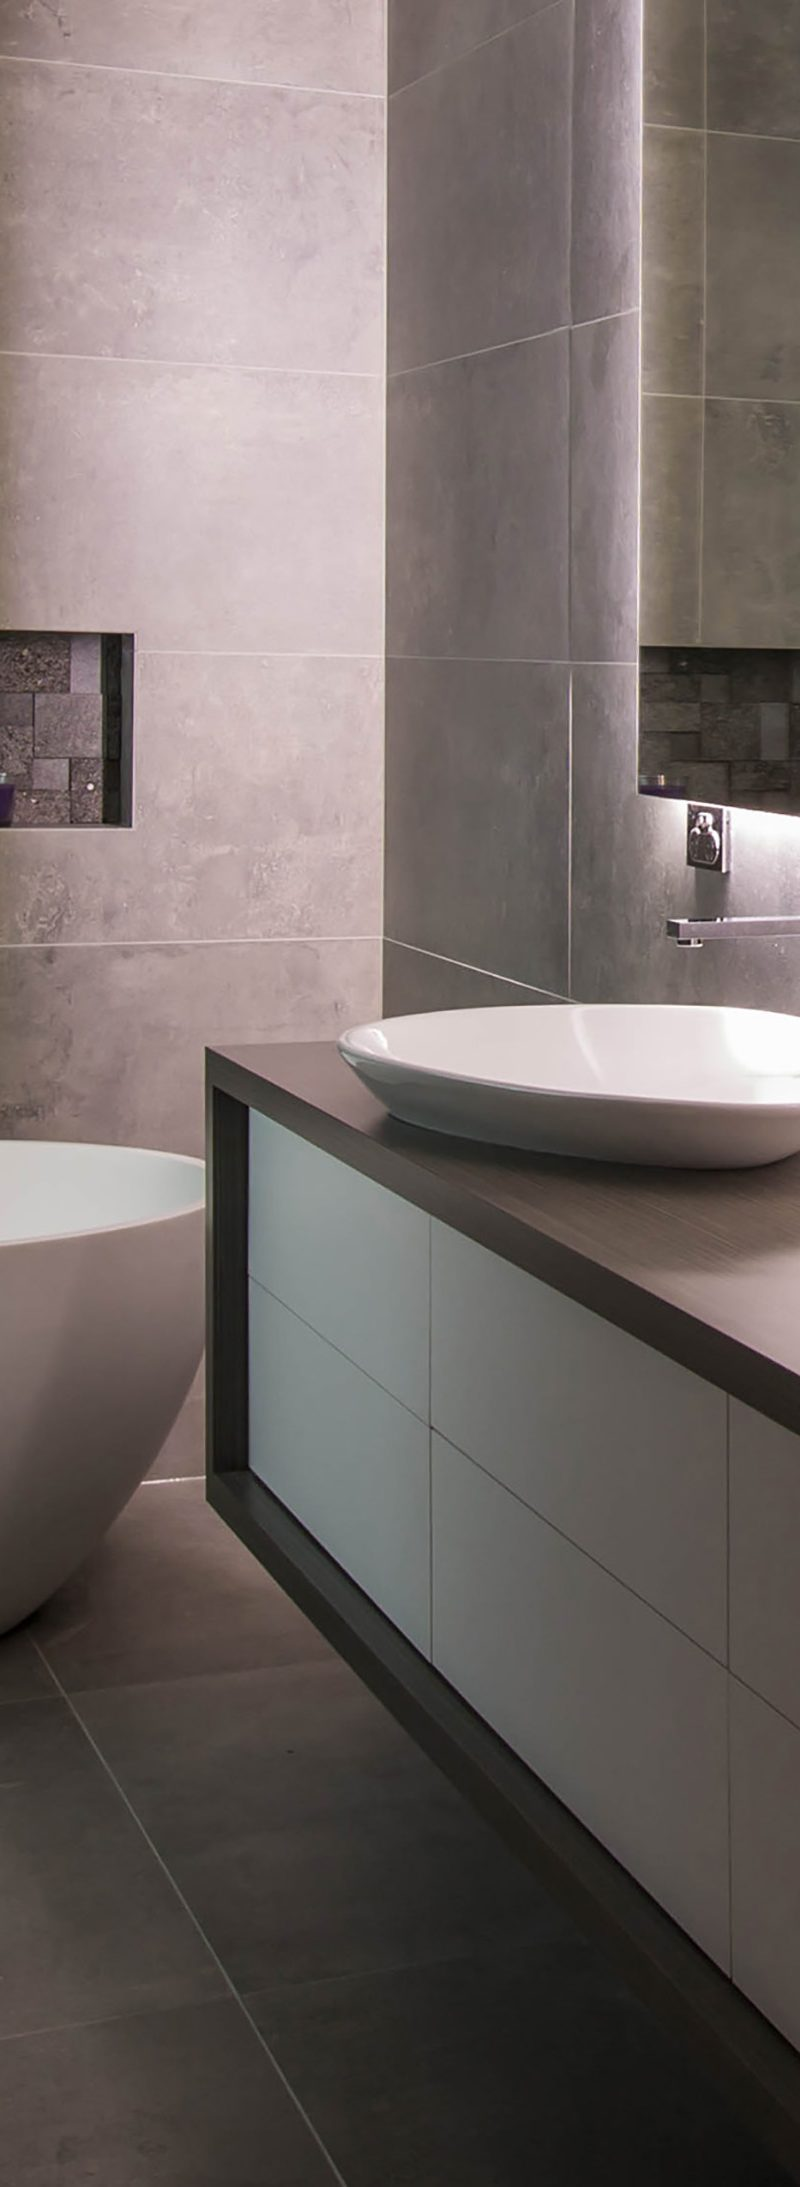 How to clean dirty tiles life 39 s tiles for How to clean bathroom tiles easily